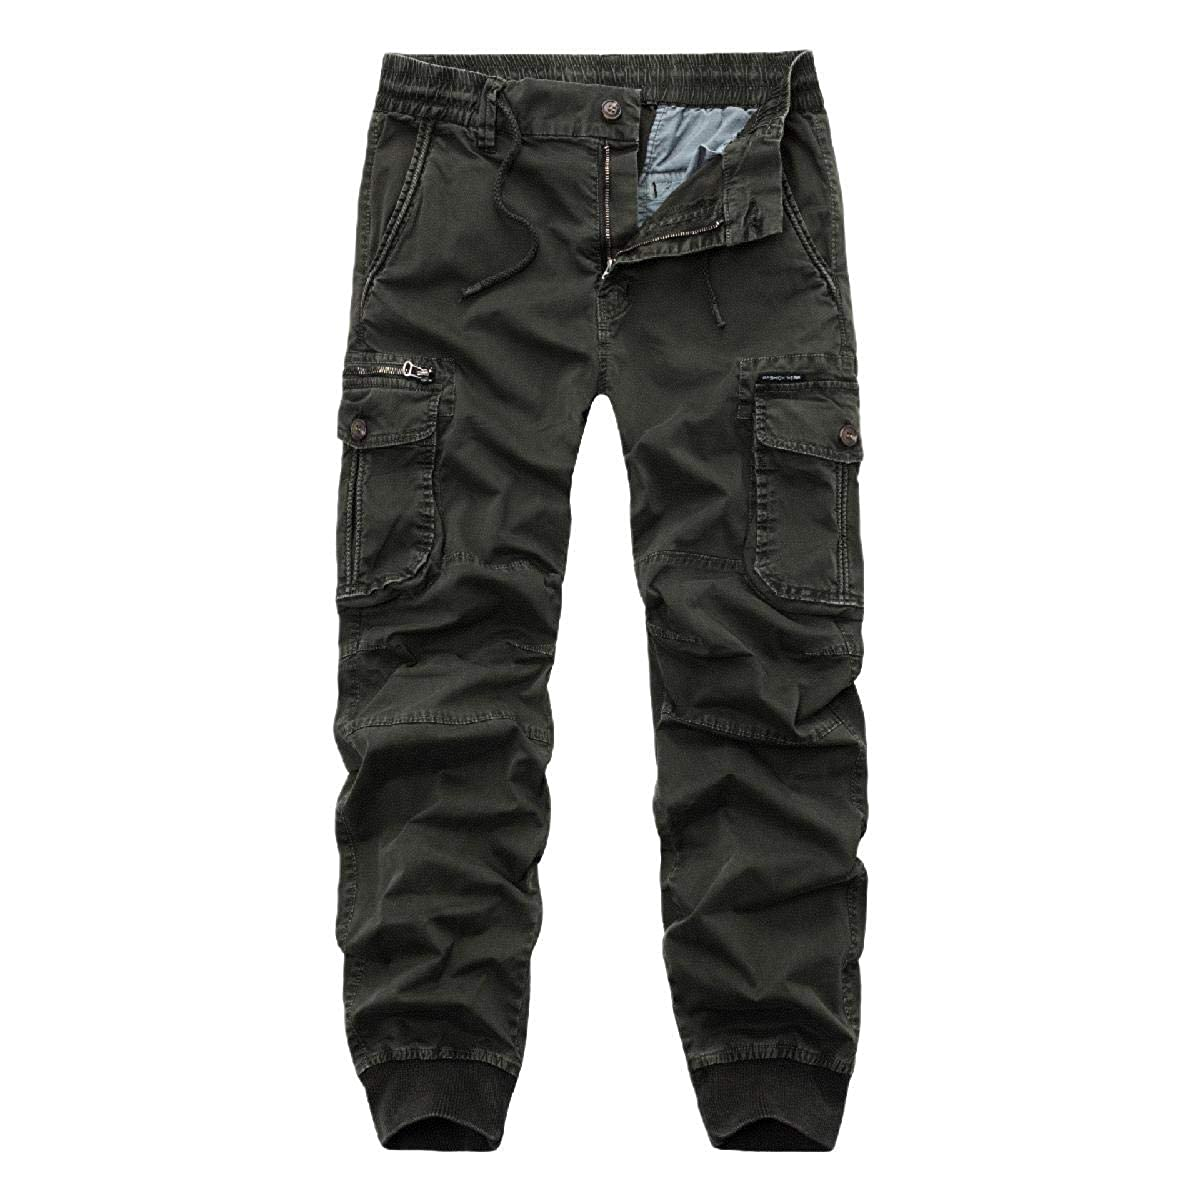 Abetteric Mens Casual Pant Oversized Premium Hipster Wild Cargo Pants